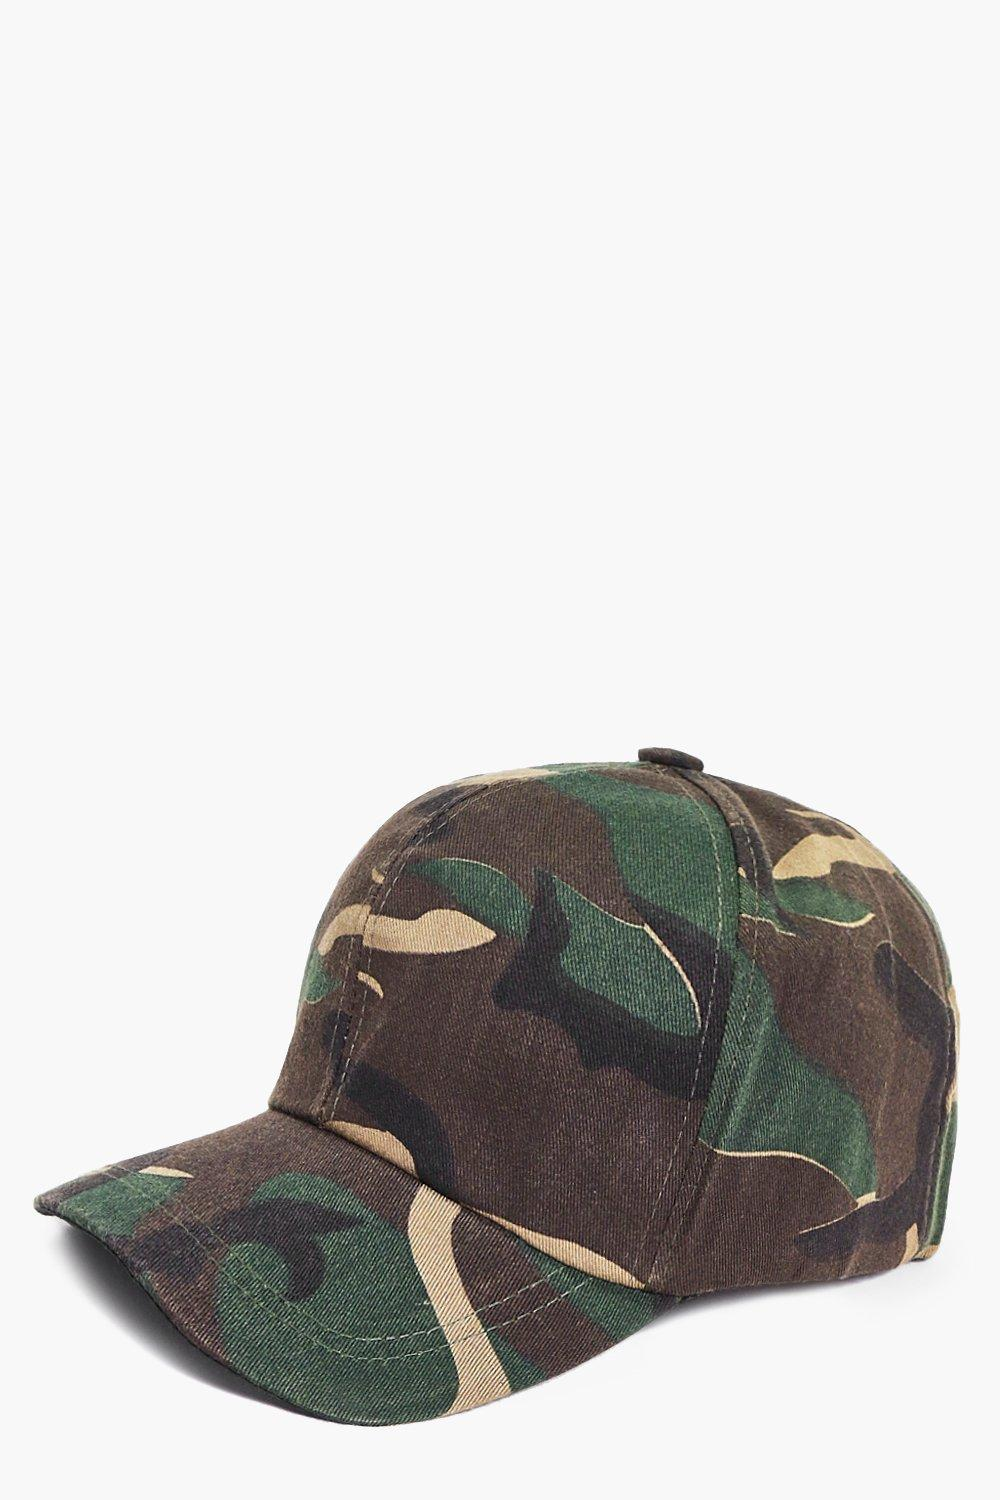 Ebony Dark Camo Baseball Cap